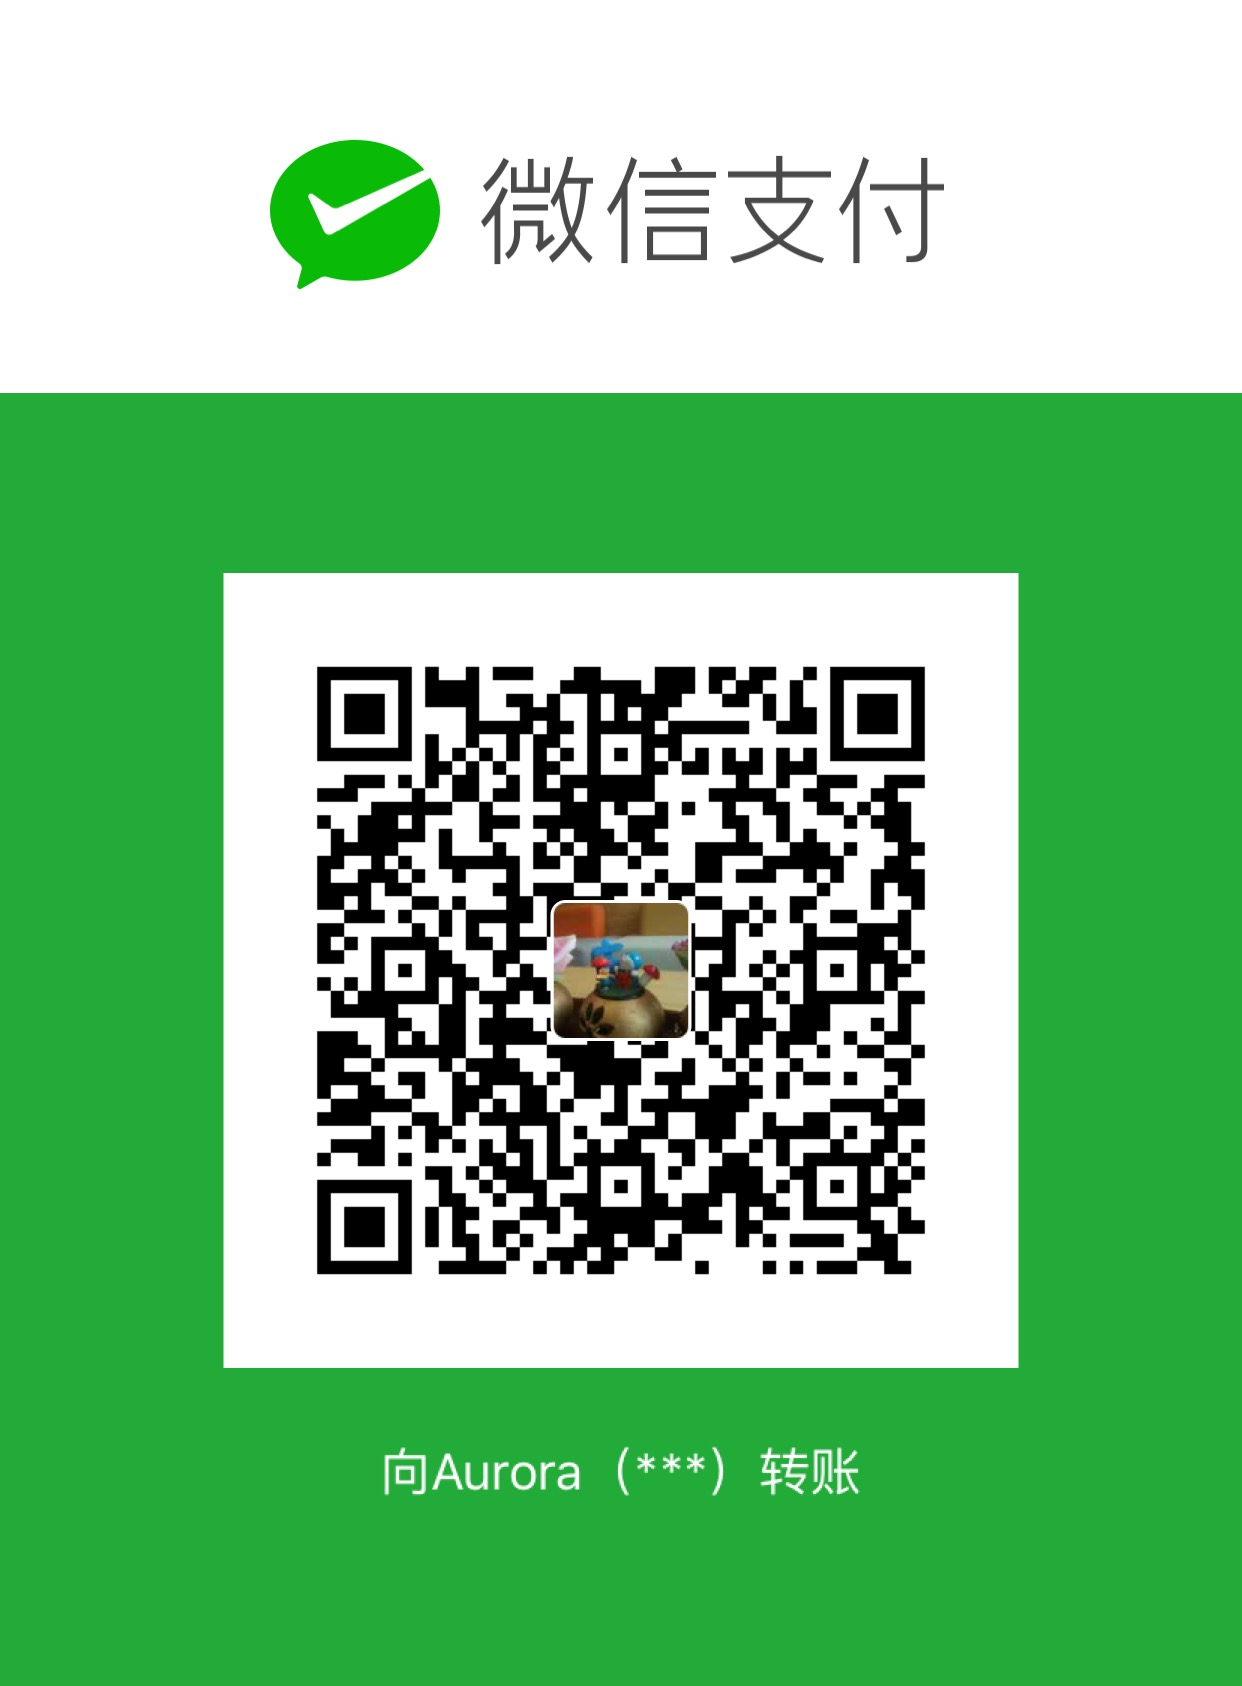 ICELI WeChat Pay